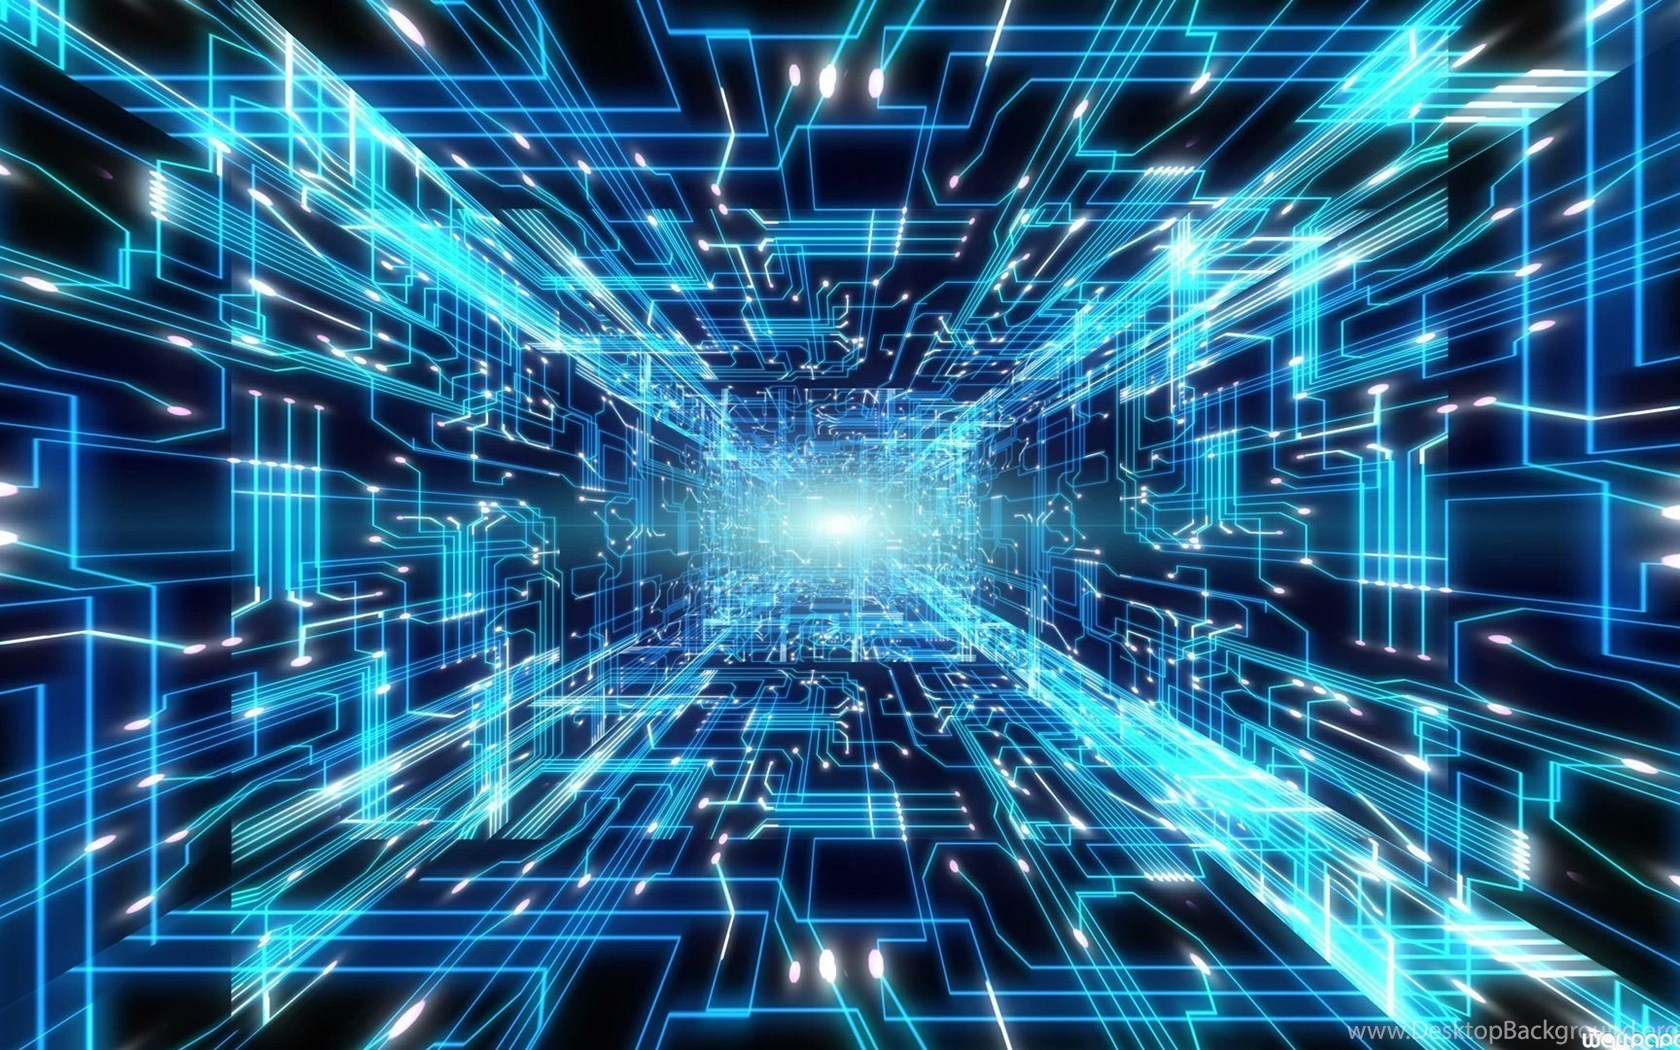 Image Result For Download Cool Backgrounds